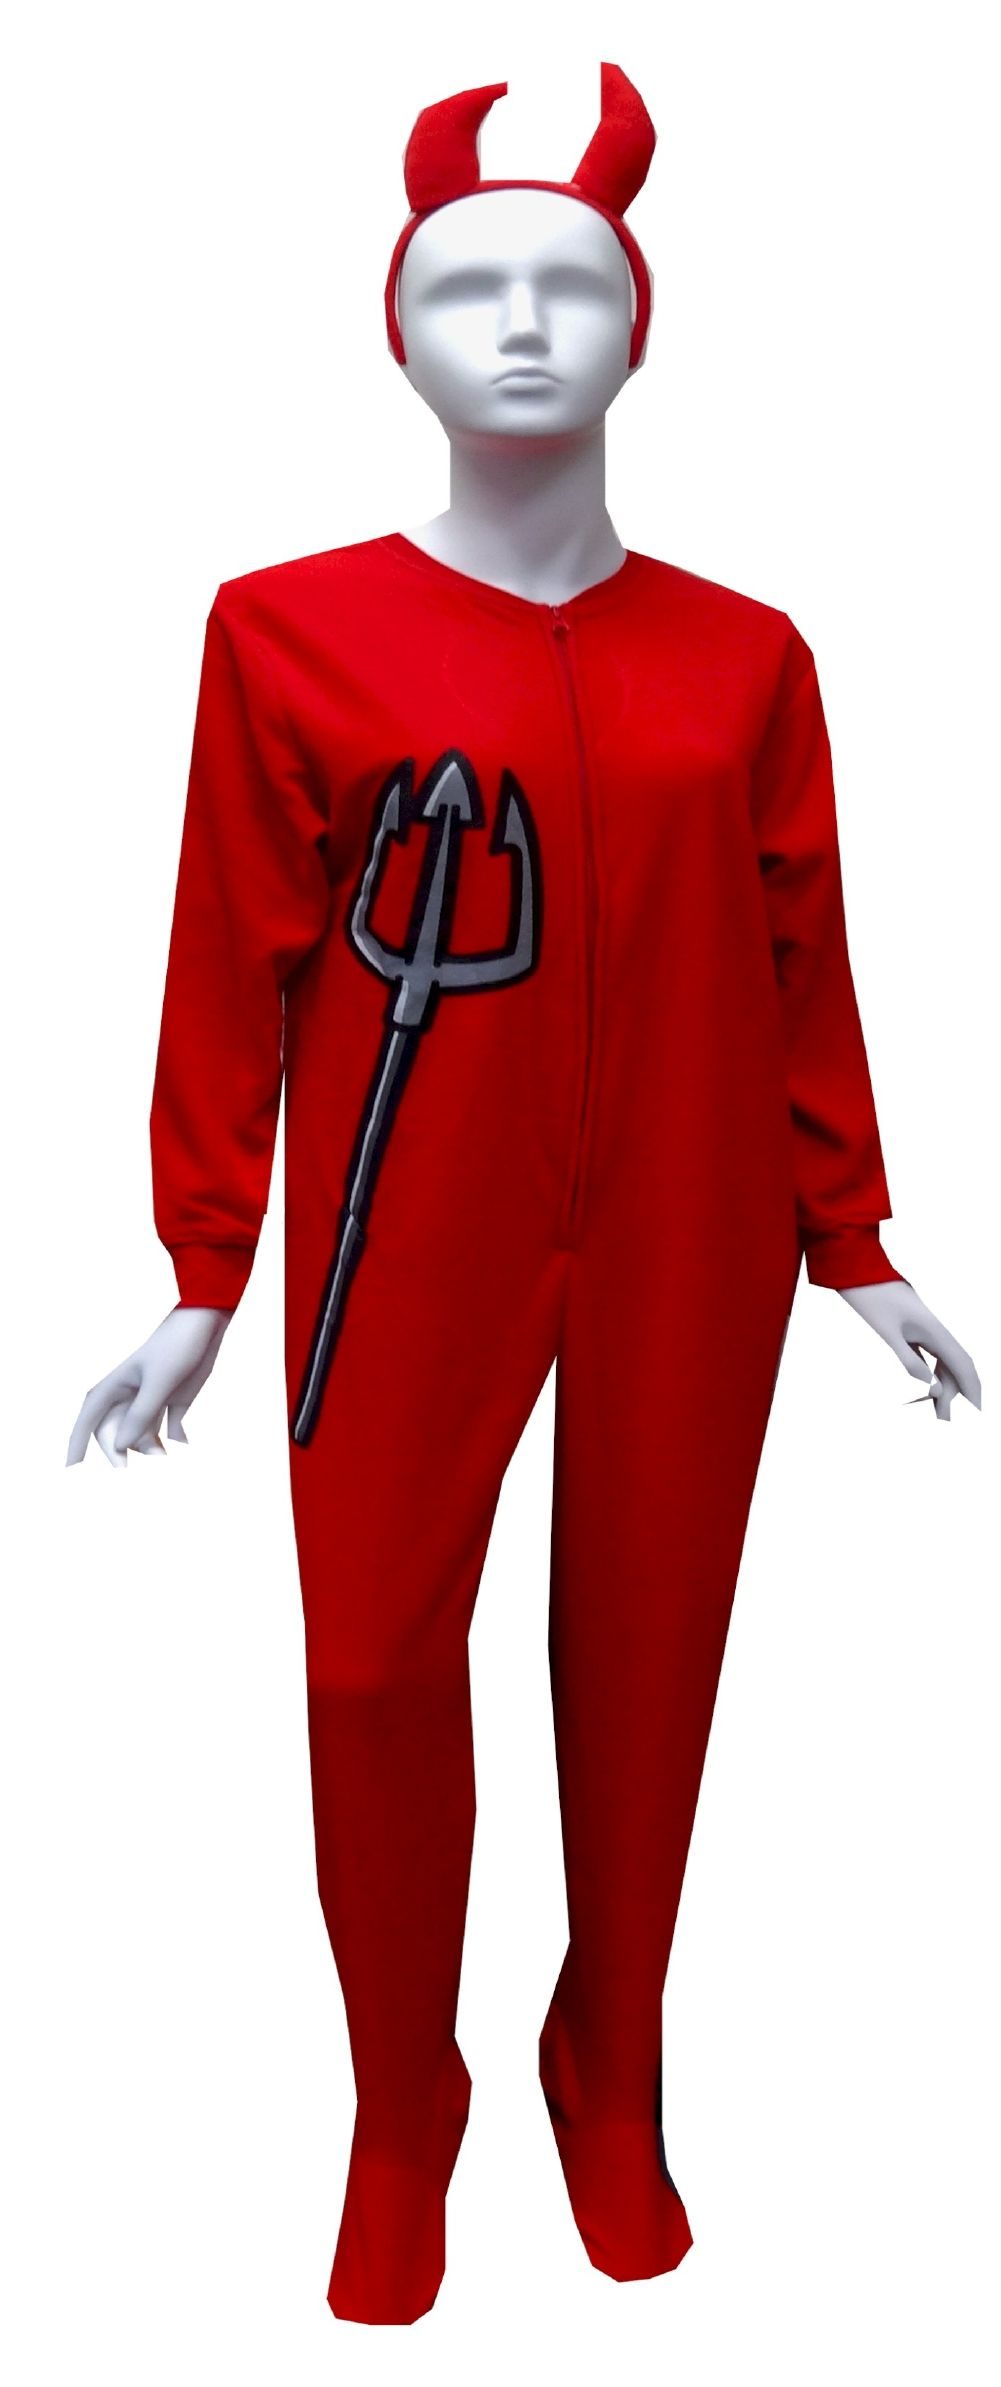 7d5ffc8dd3 Red Devil Onesie Footie Pajama Feeling a little naughty  These footed onesie  pajamas for women are designed to look like a devil